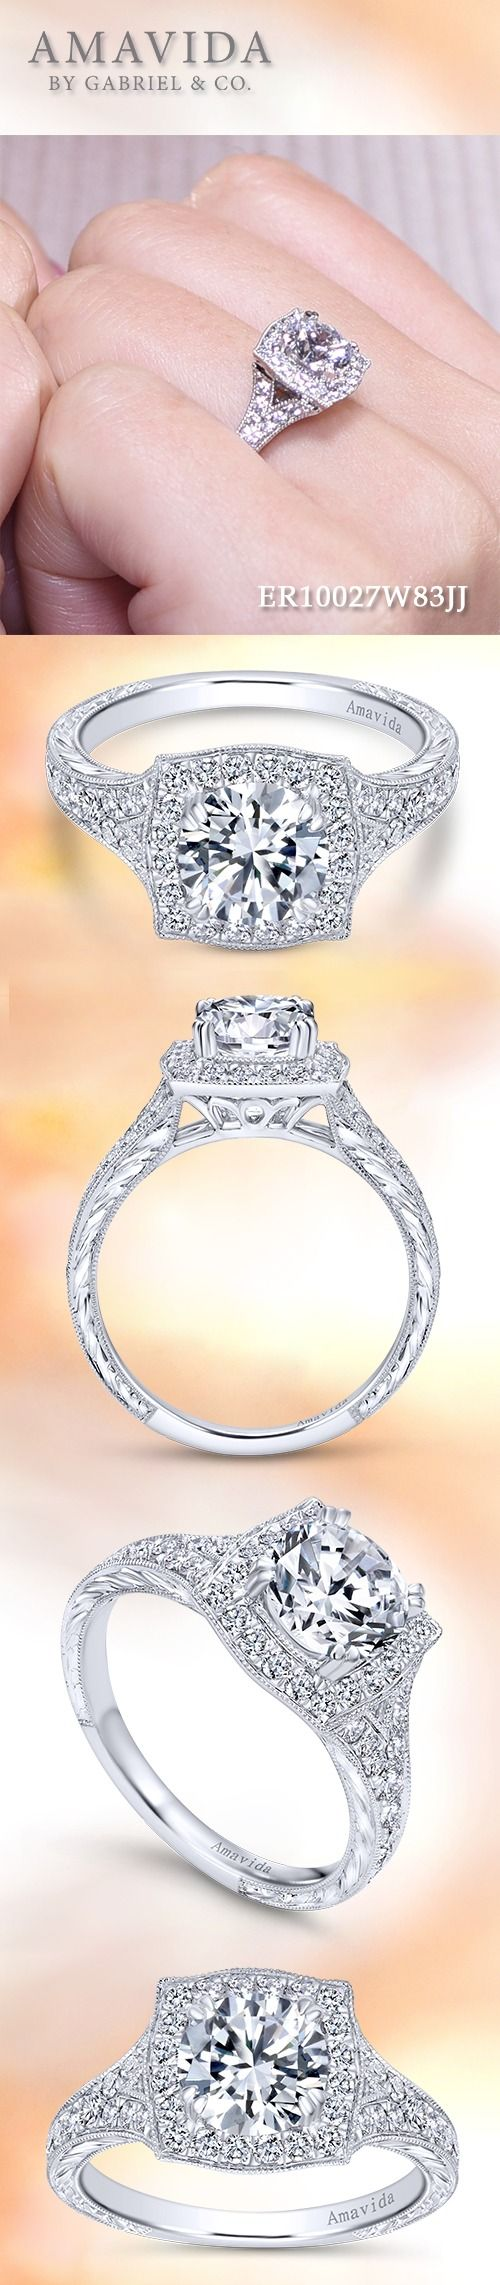 AMAVIDA by Gabriel & Co.-Voted #1 Most Preferred Fine Jewelry and Bridal Brand. Meet Felicity - Romantic halo engagement ring, a diamond band with antique-style engraving and milgrain borders features a subtle split at each shoulder.